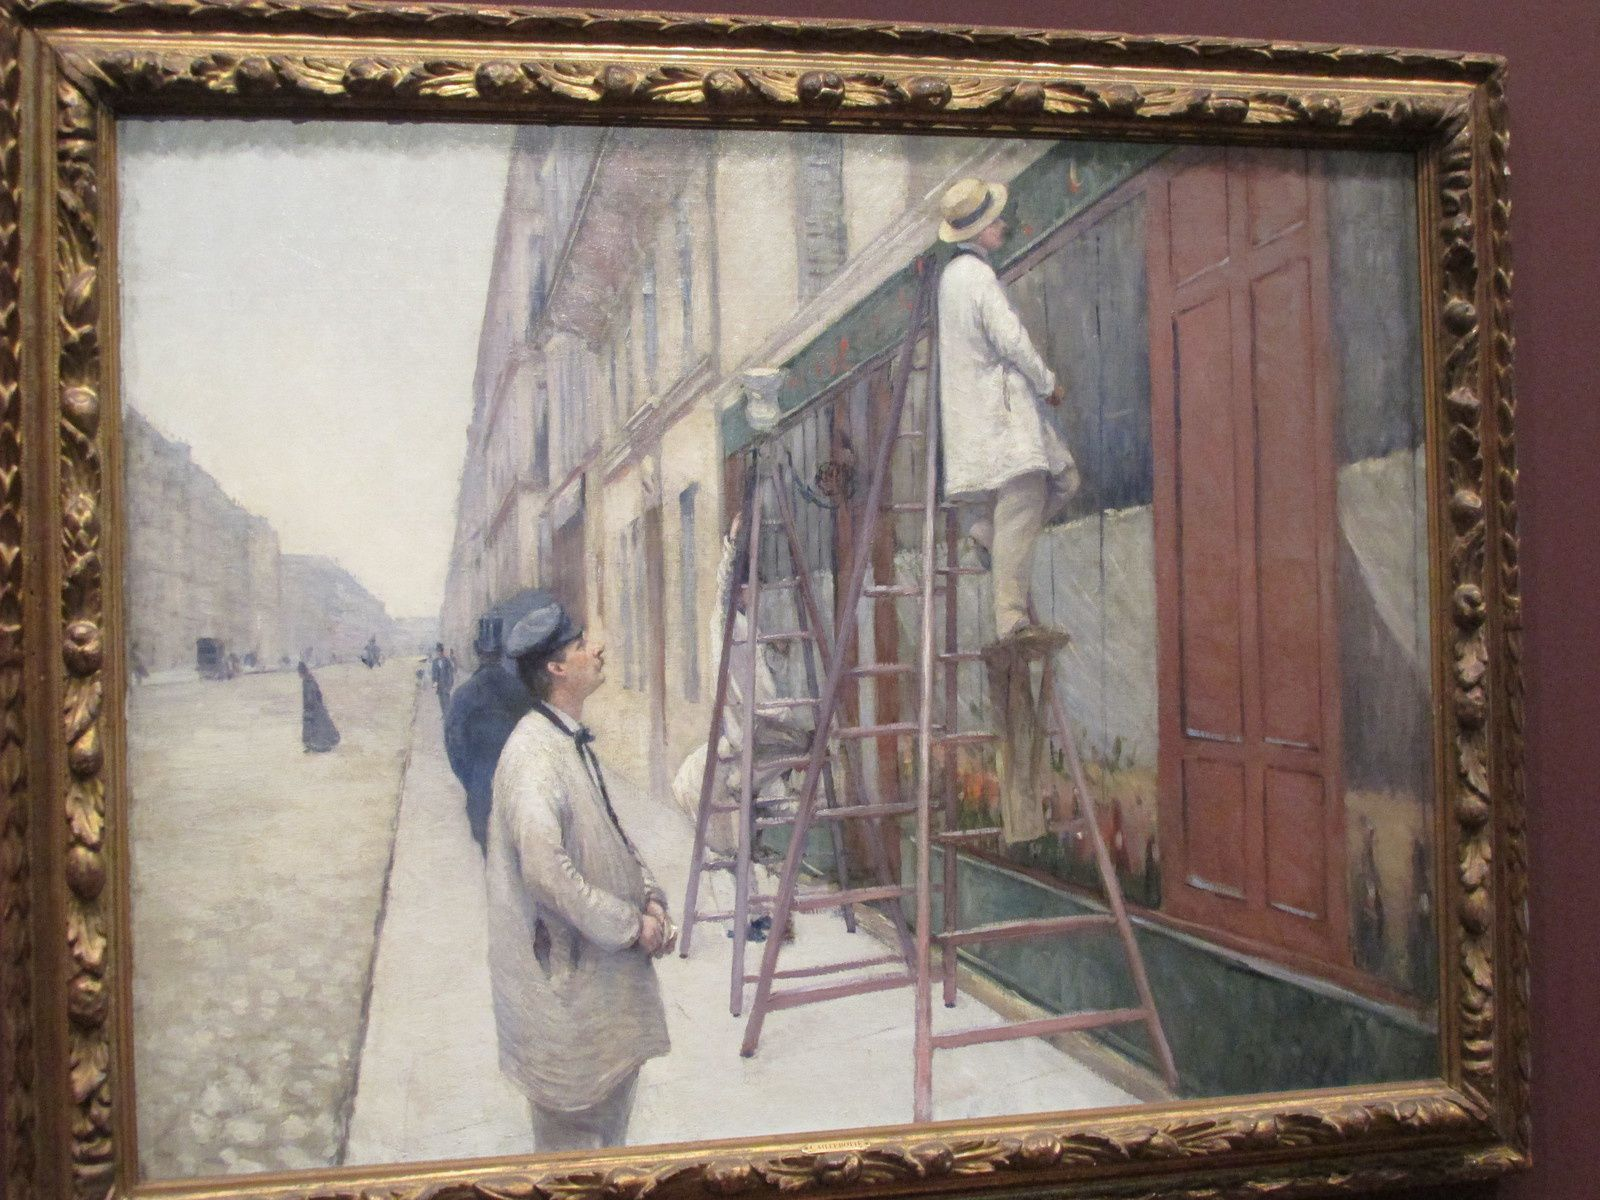 CAILLEBOTTE A GIVERNY / ARTS PLASTIQUES / ACTUALITES